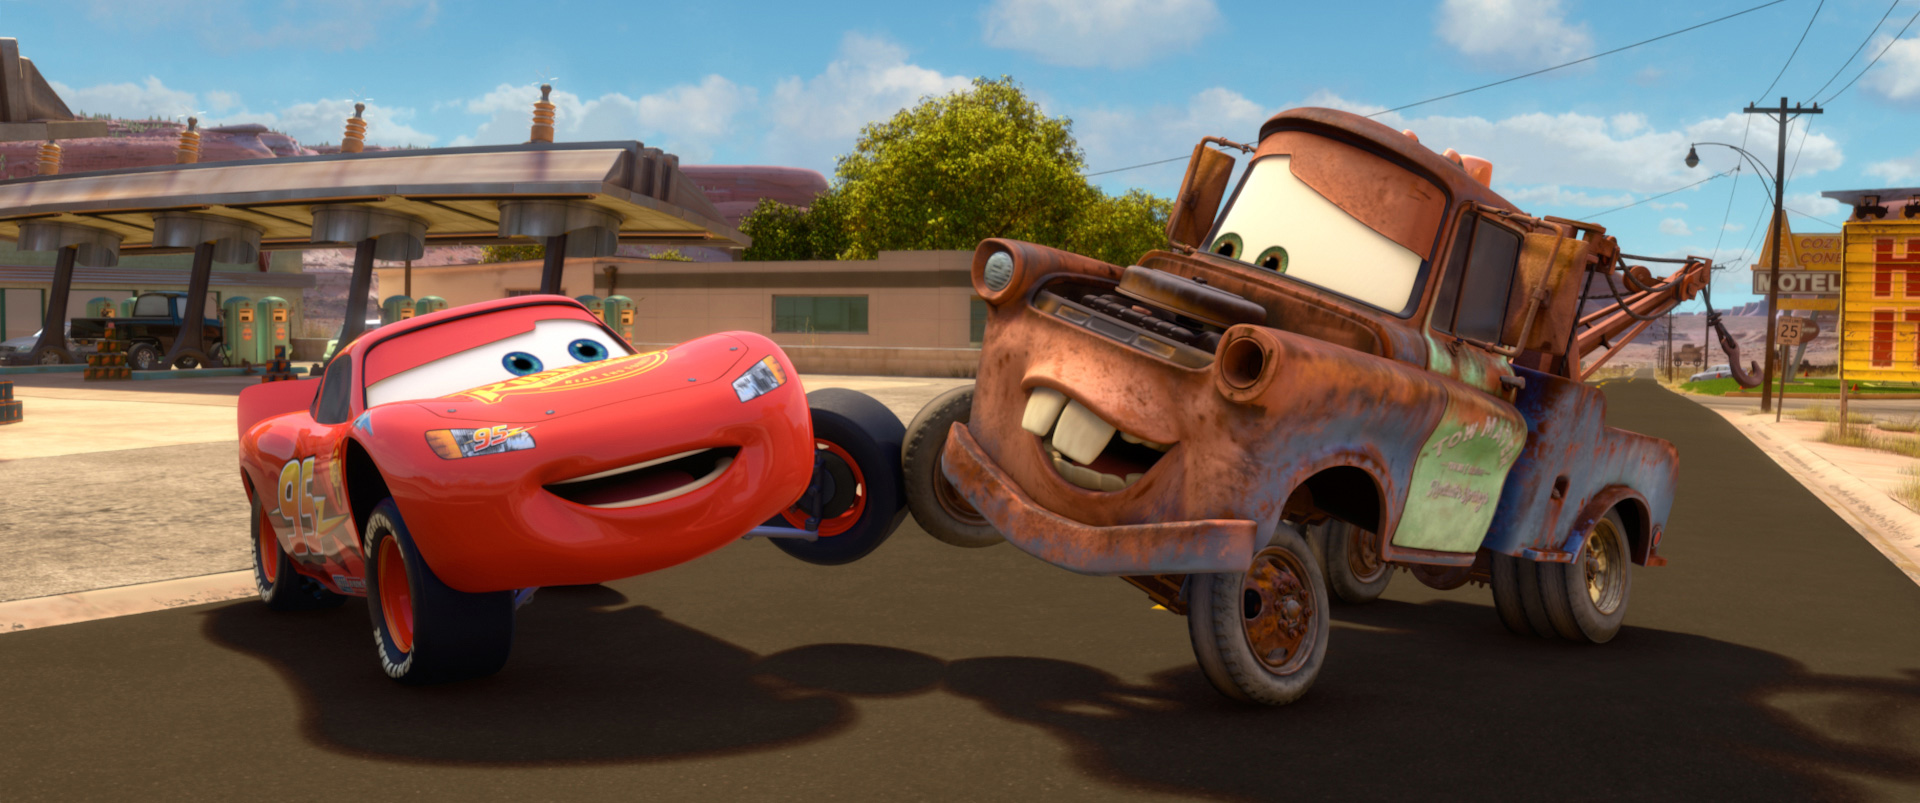 Mater relationships disney wiki fandom powered by wikia - Martin flash mcqueen ...